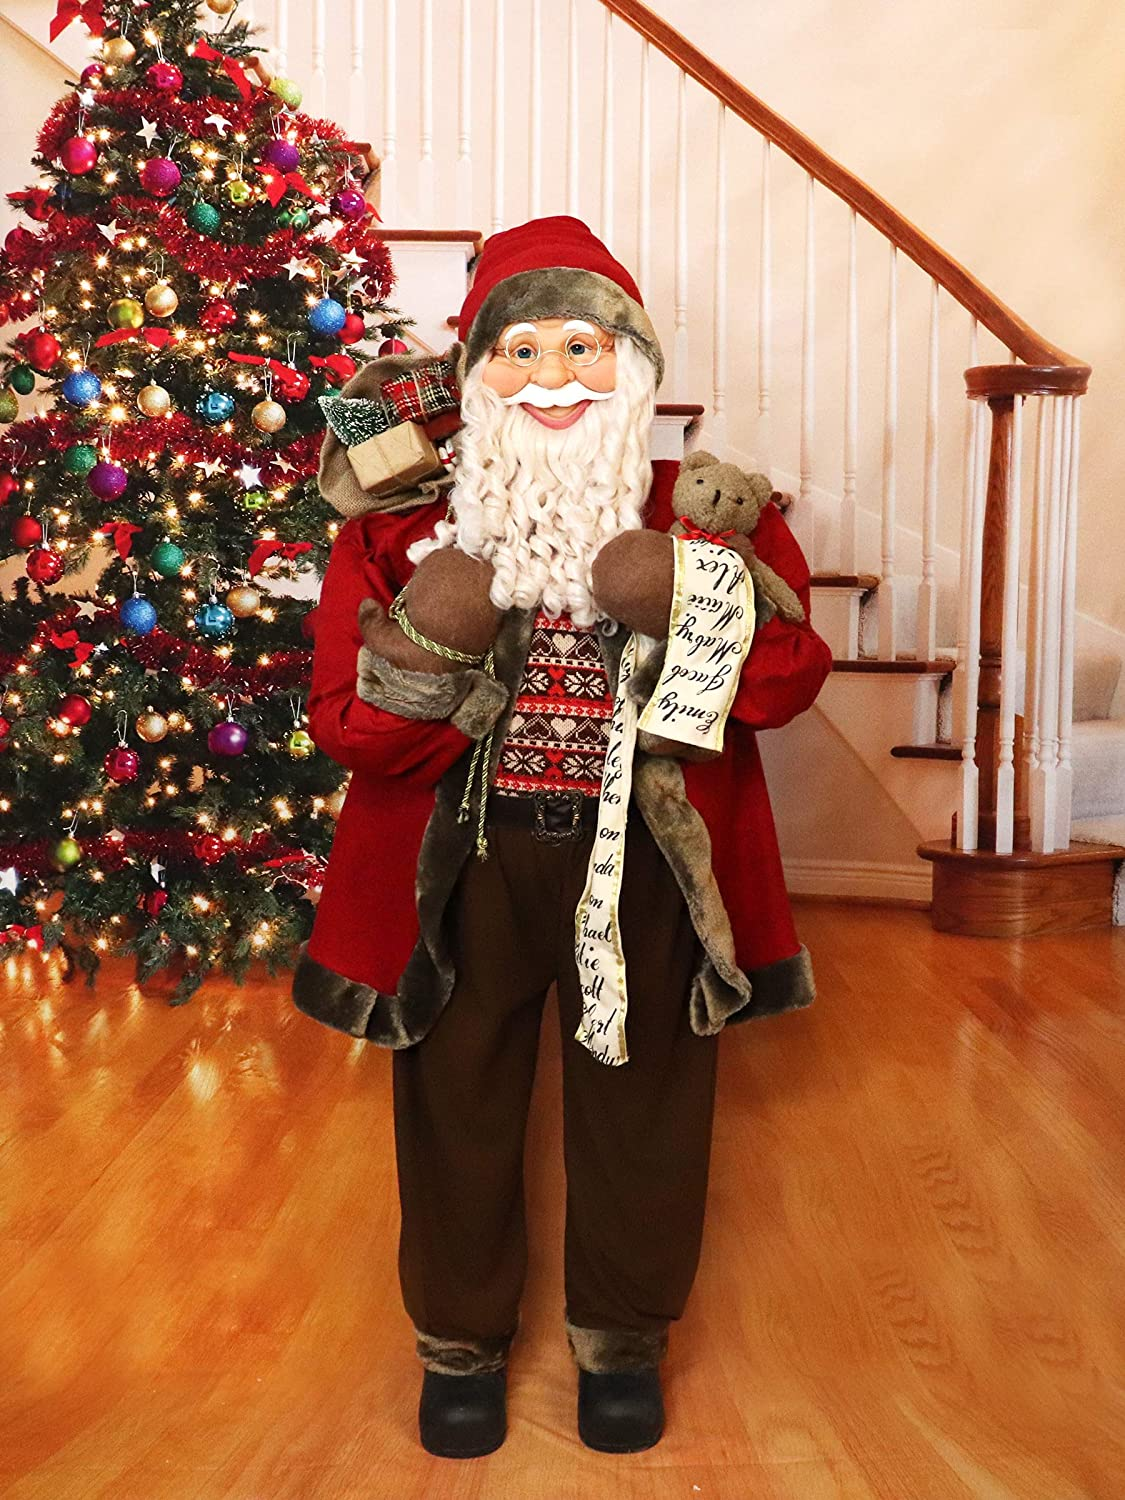 Fraser Hill Farm Life-Size Indoor Christmas Decoration, 5-Ft. Standing Santa Claus with Scroll, Gift Sack, and Bear, Wearing a Nordic Sweater, Red